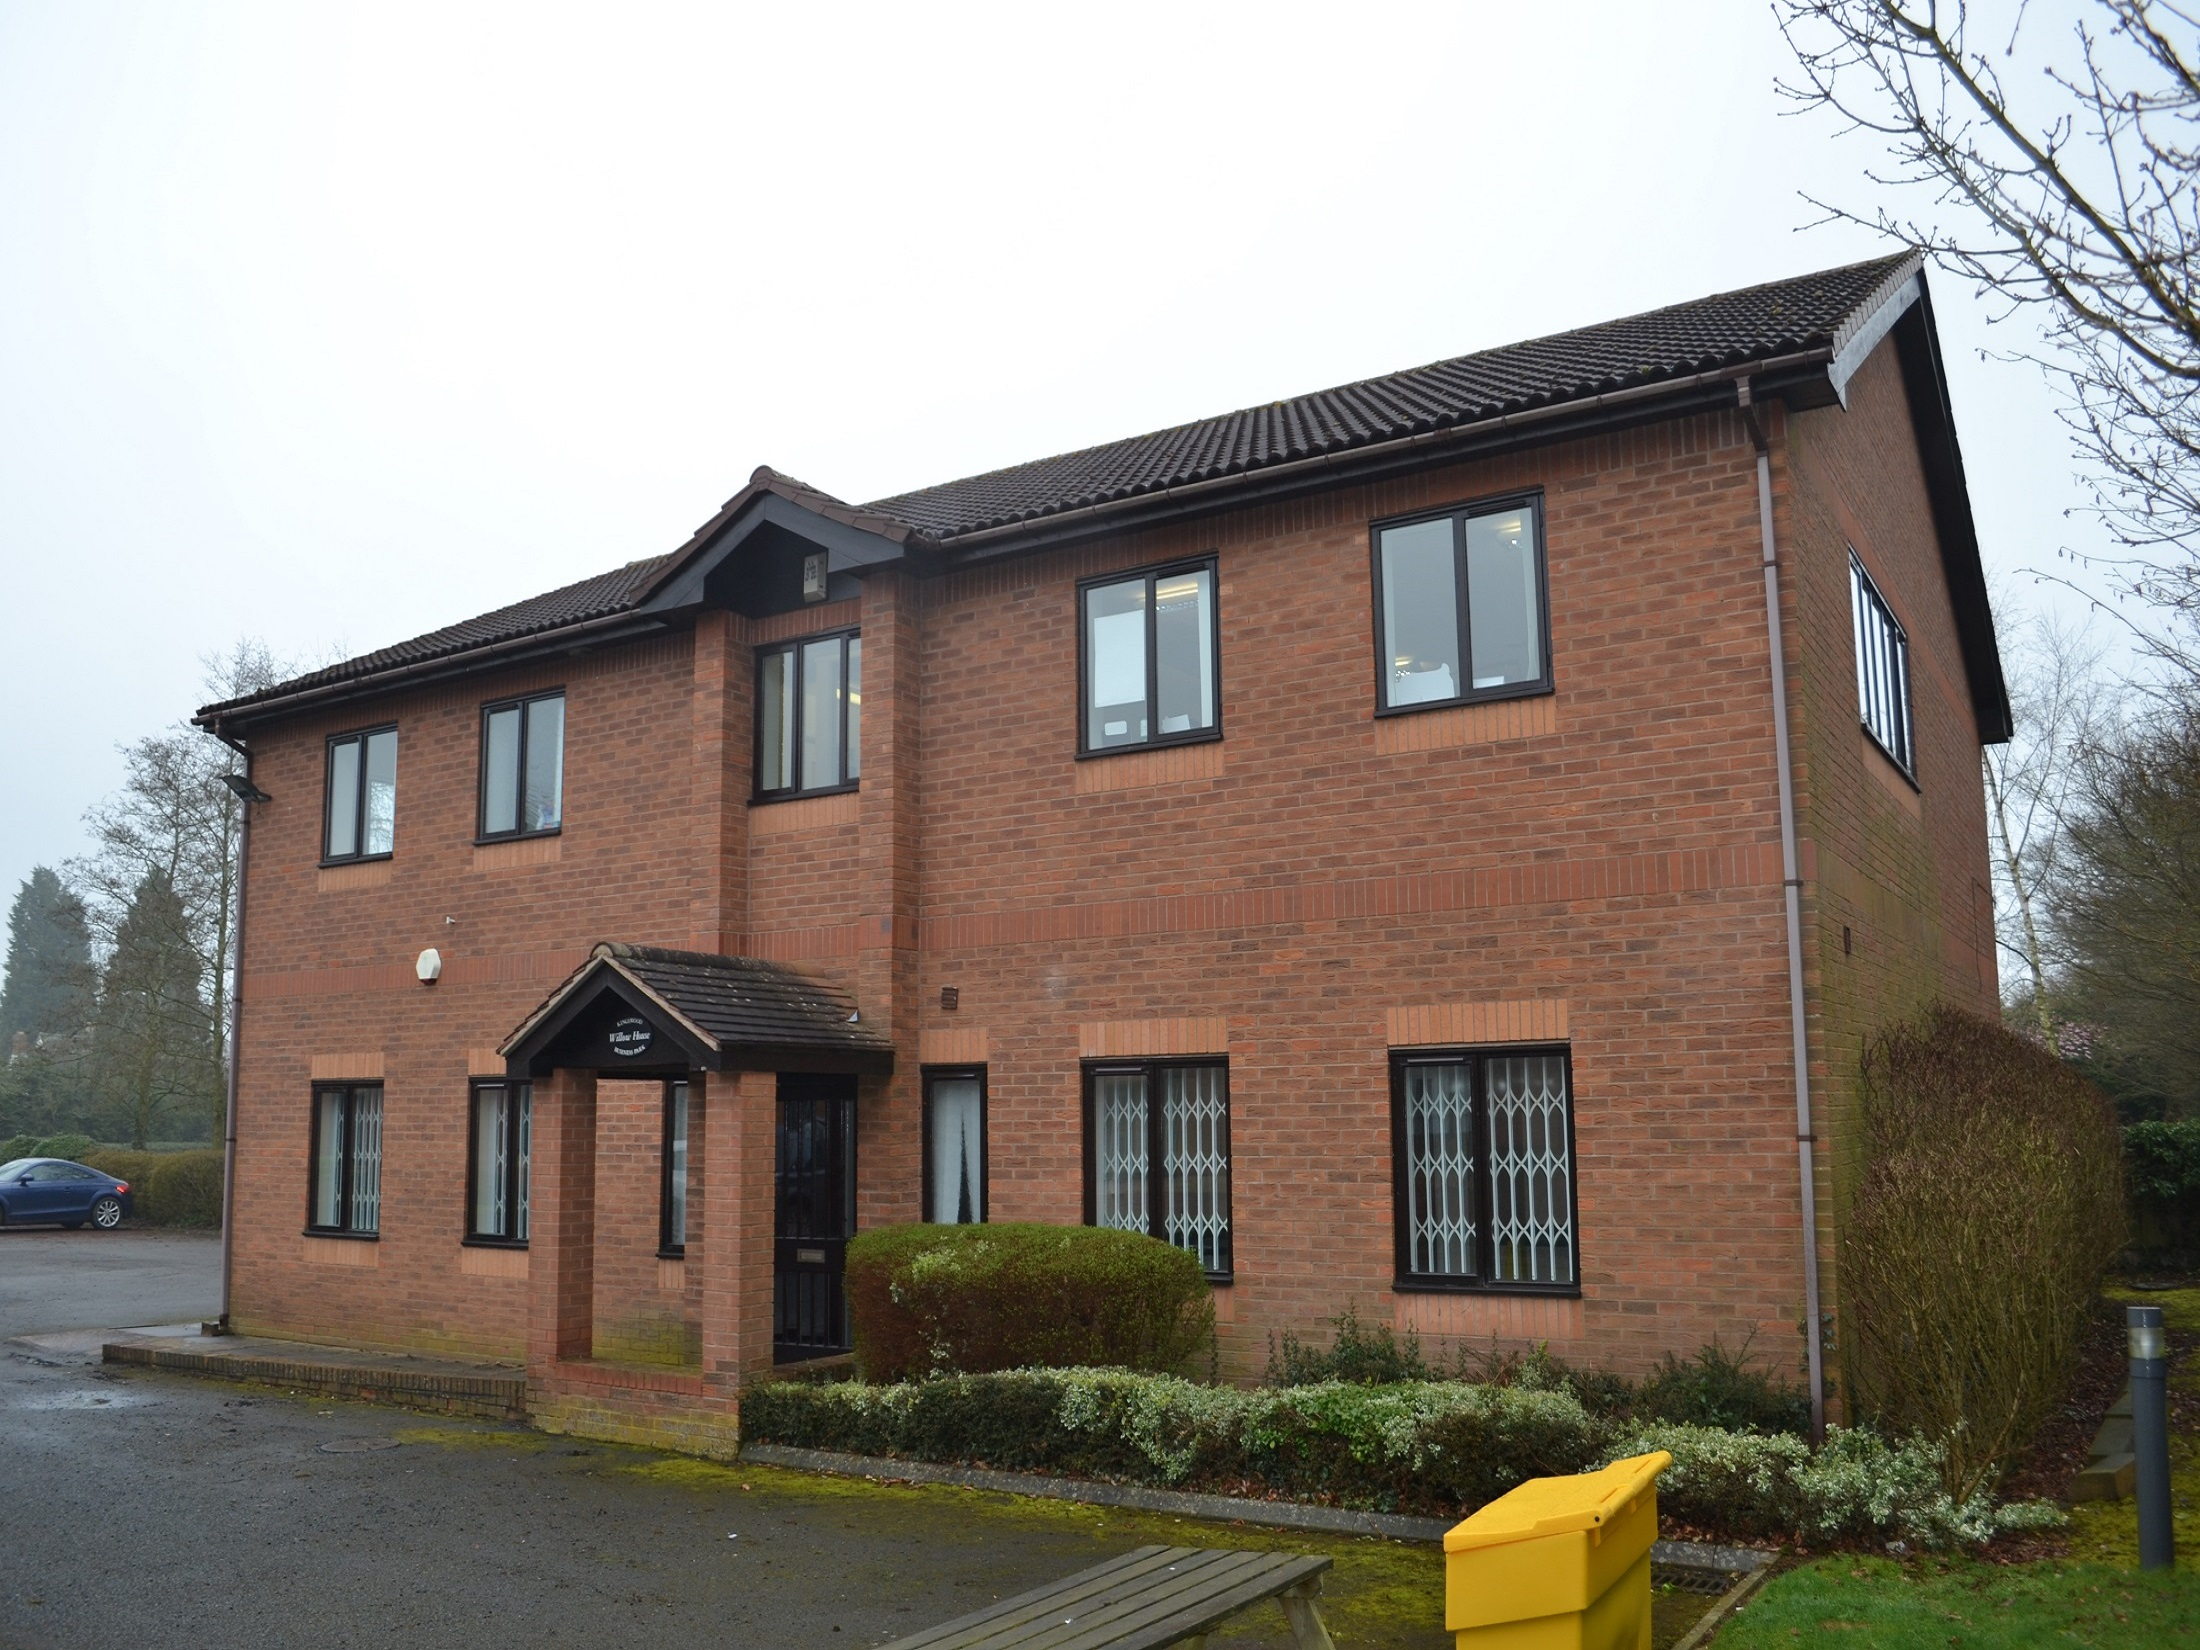 Suite 3 - Willow House, Kingswood Business Park, Holyhead Road, Albrighton, WV7 3AU